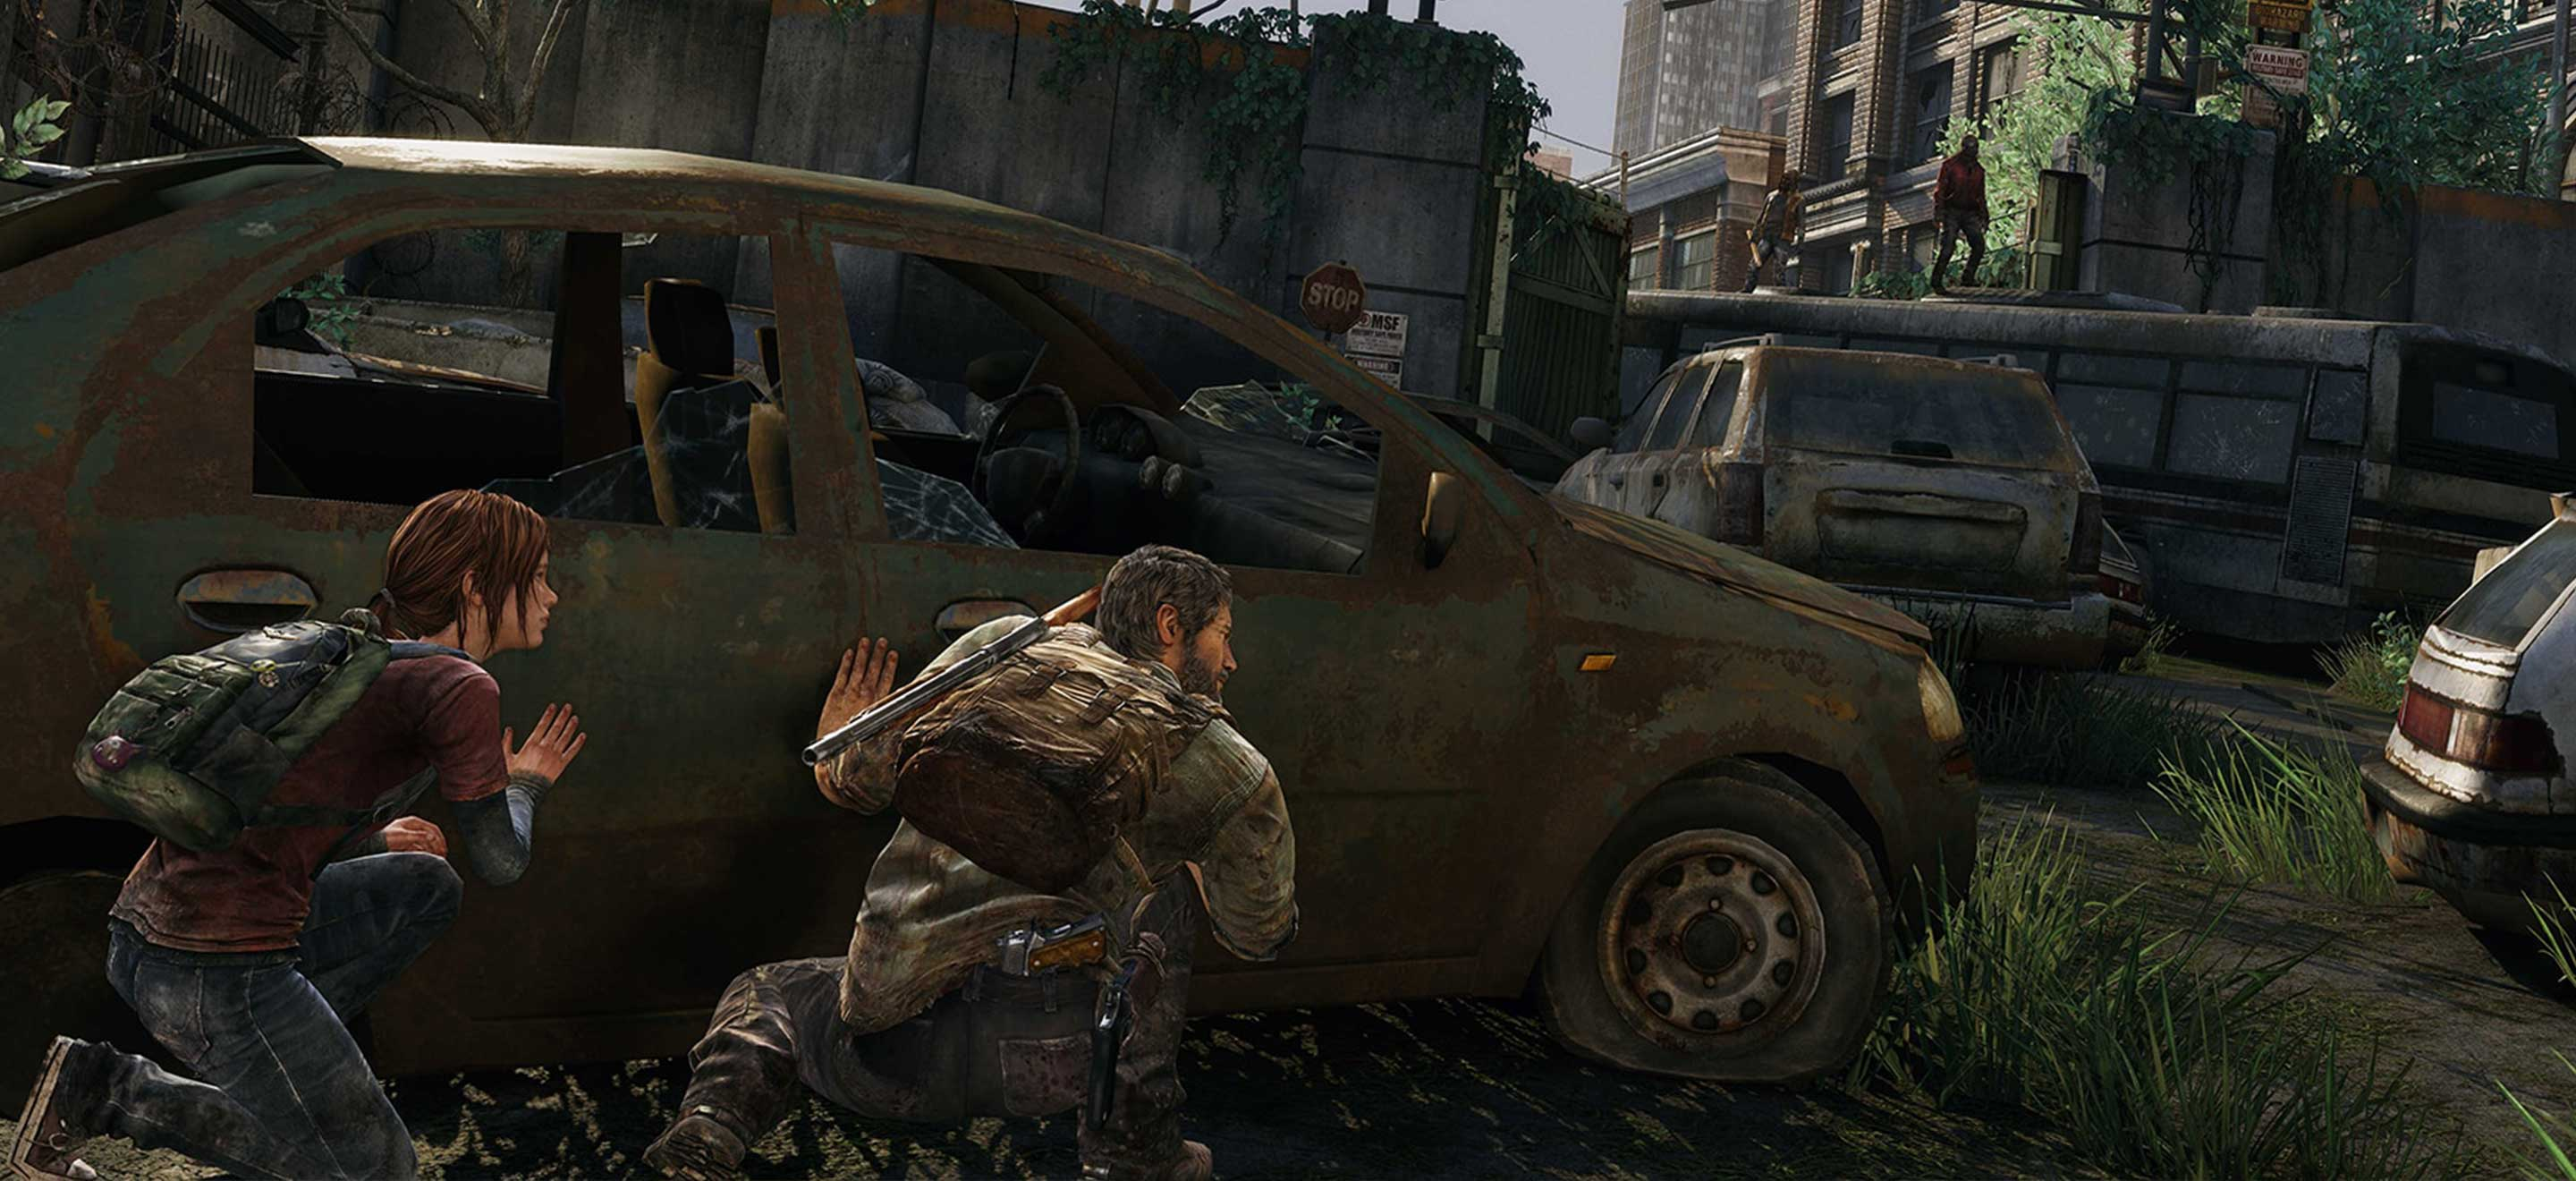 Avant The Last of Us, il y avait Mankind